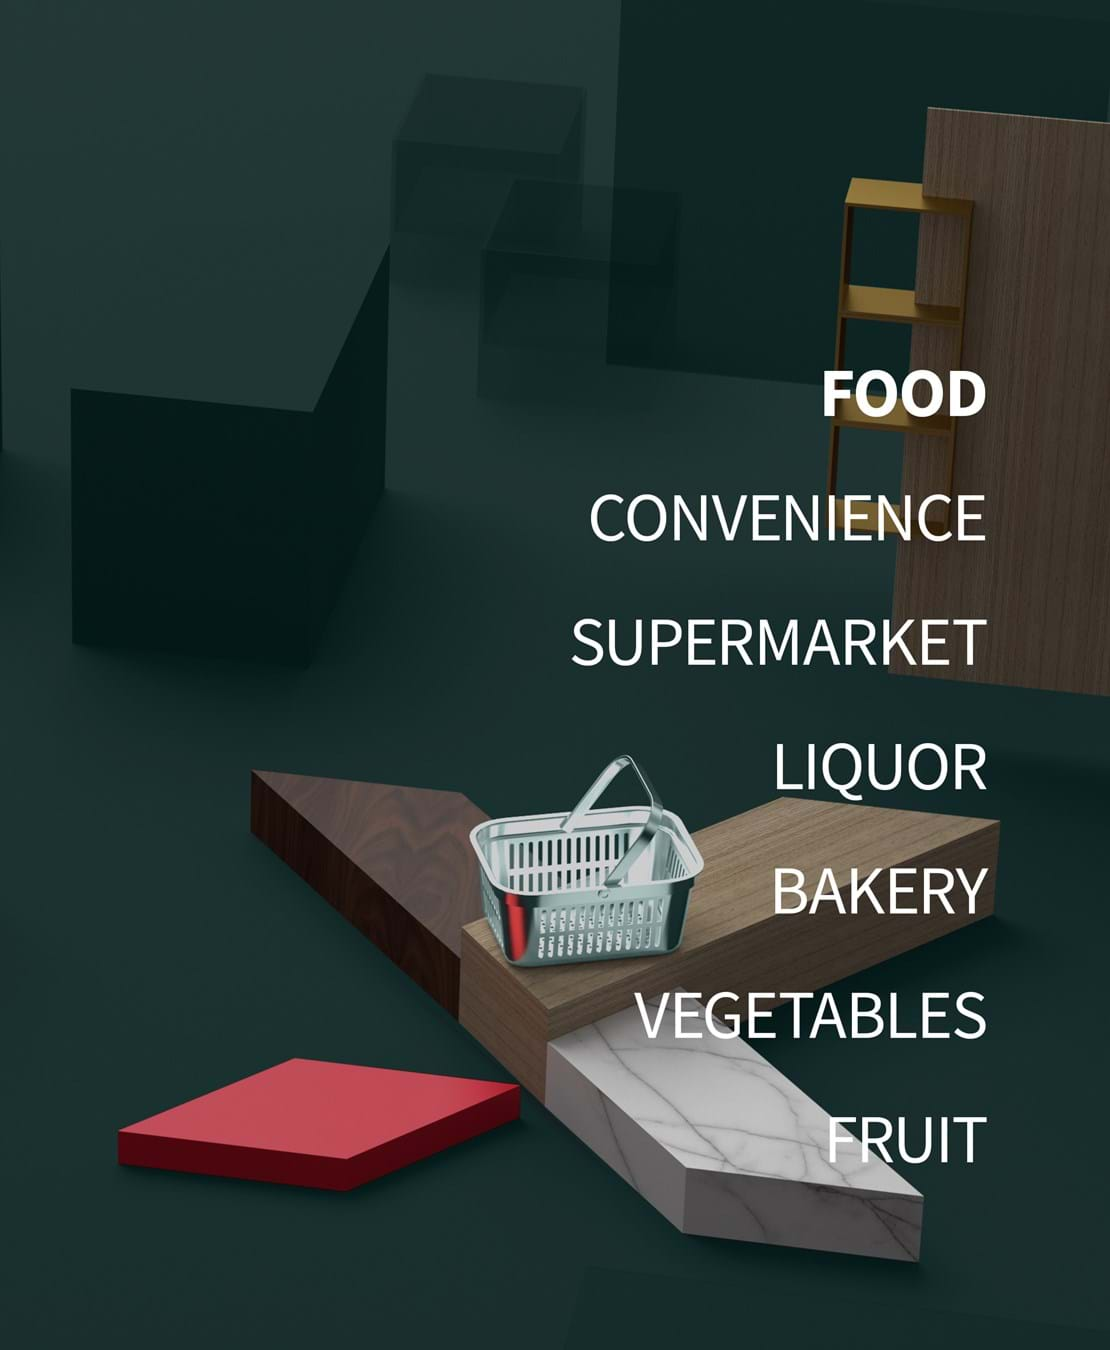 01-Expedit-kontakt-food-005.jpg